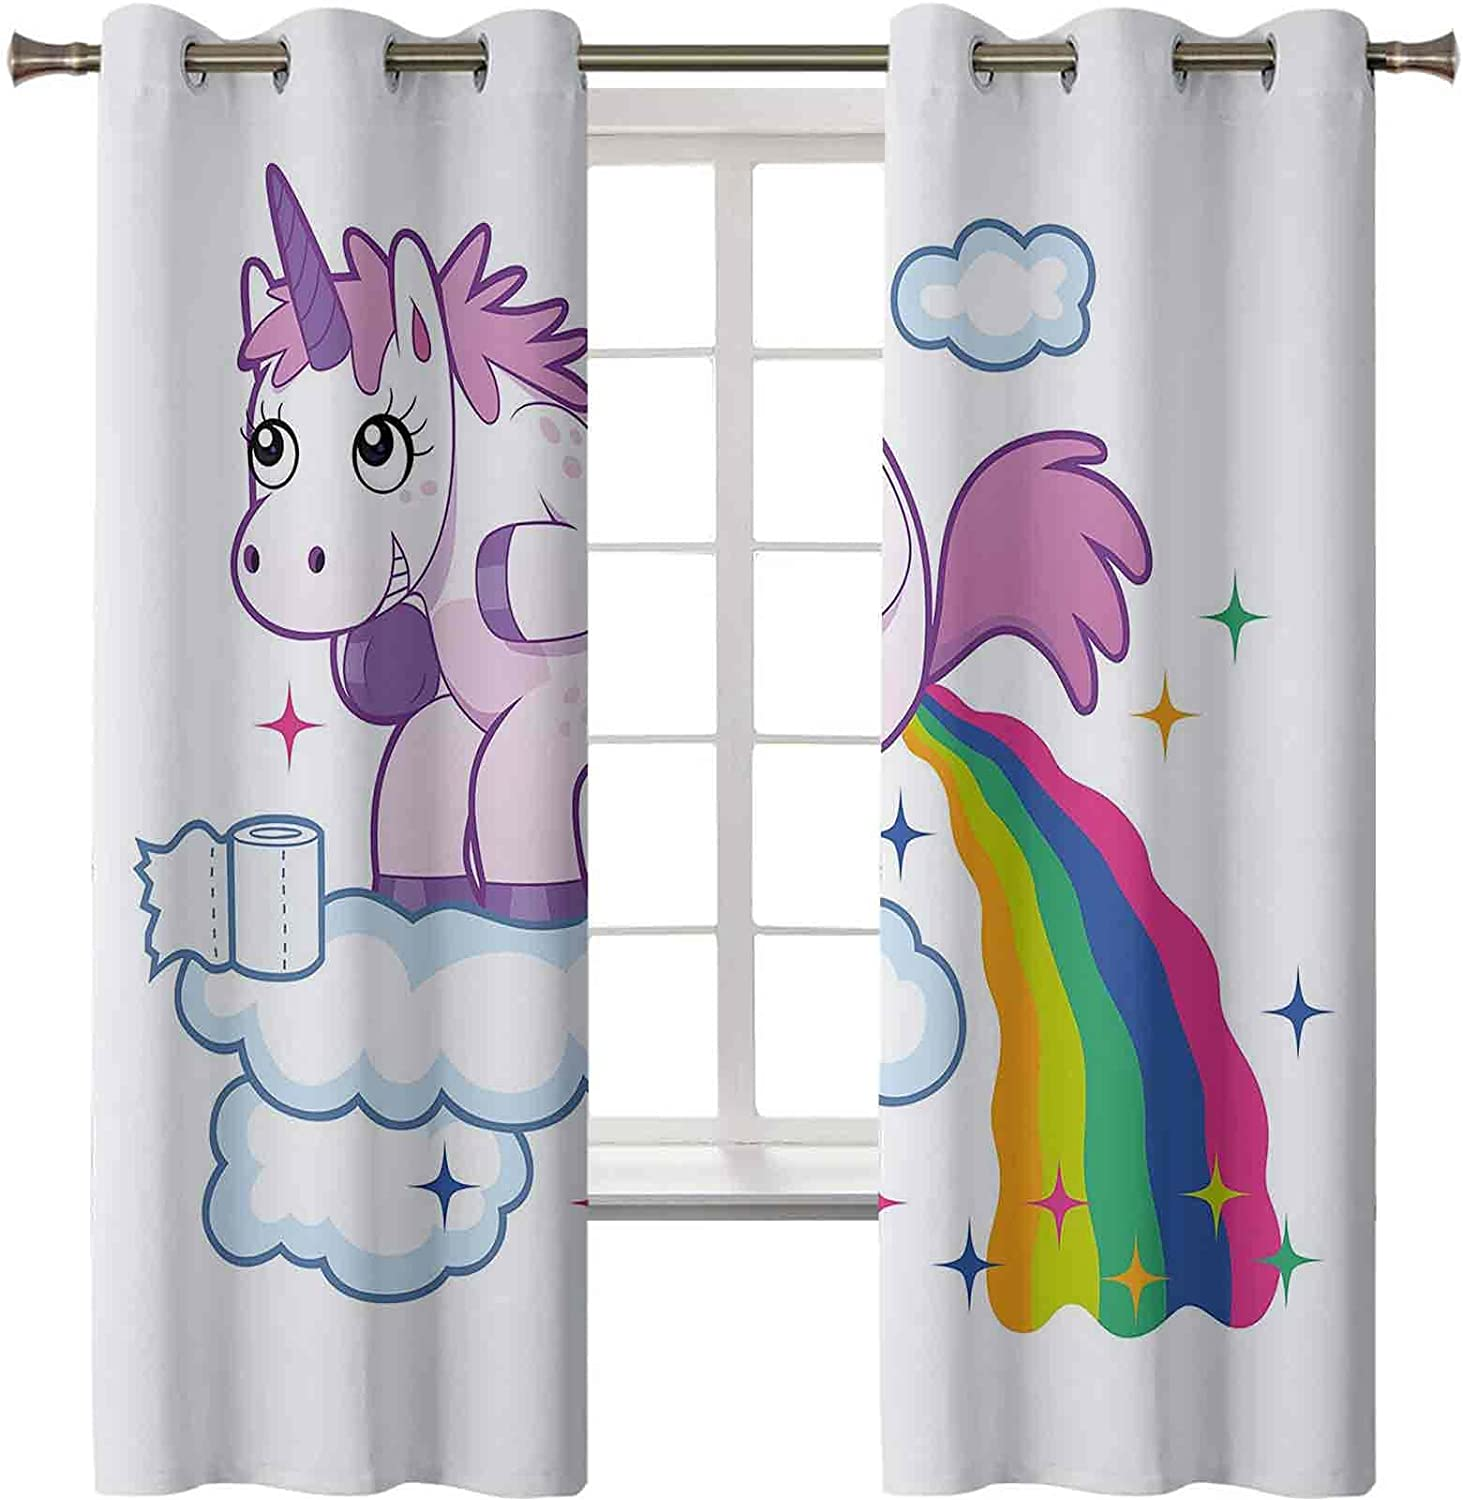 Curtains for Living Room Unicorn Cr Pooping Clouds OFFer Over Rainbow Super intense SALE